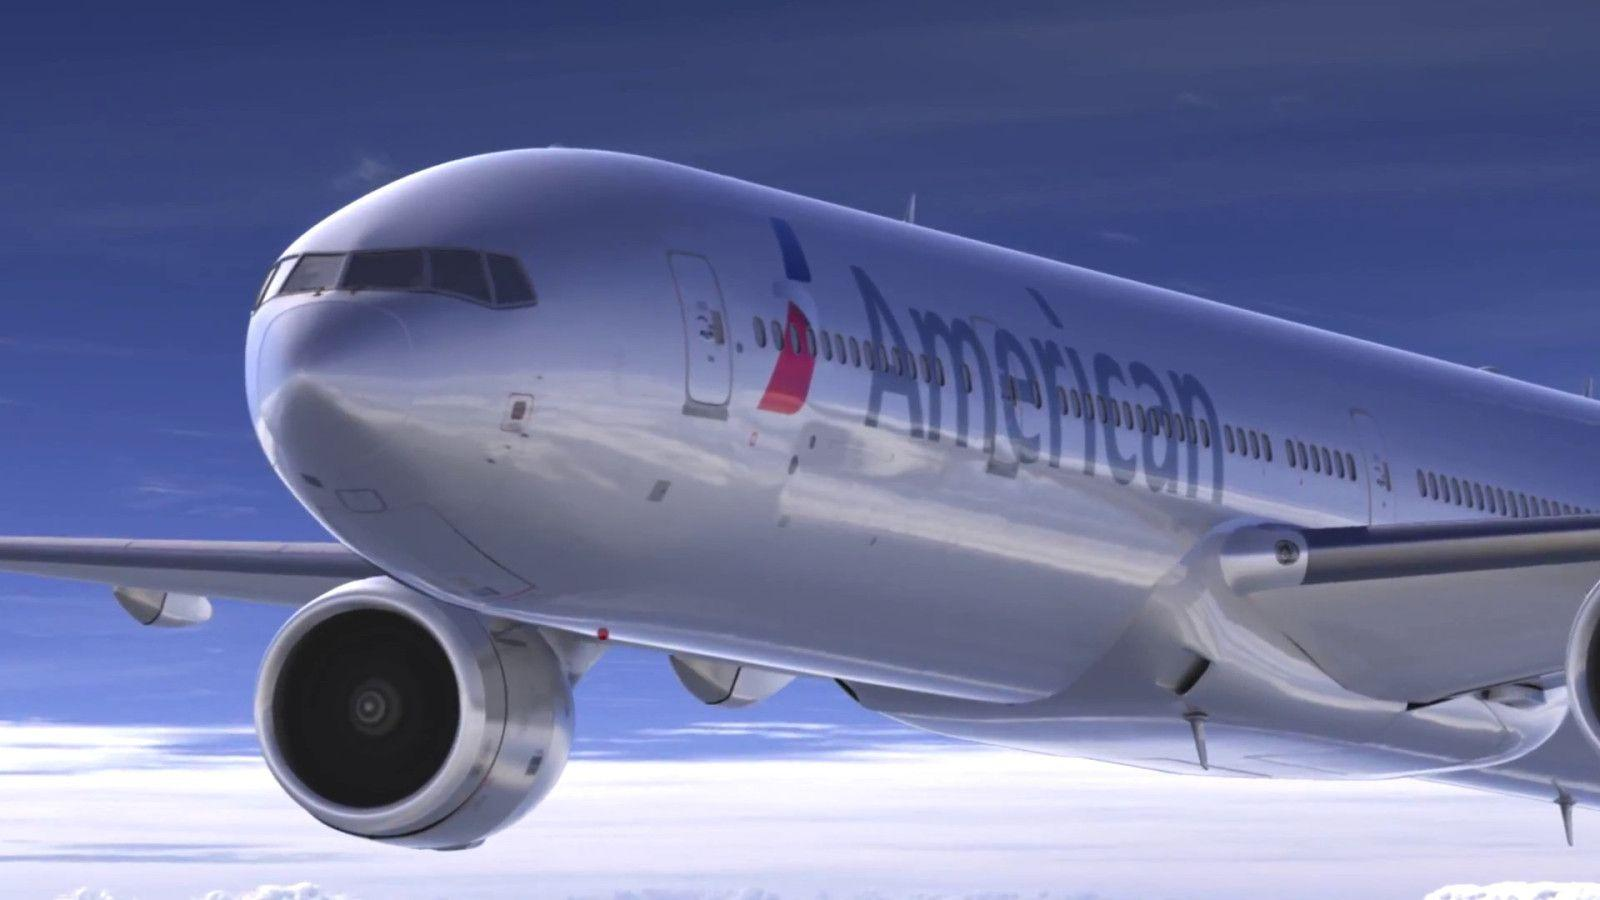 American Airlines Wallpapers Wallpaper Cave